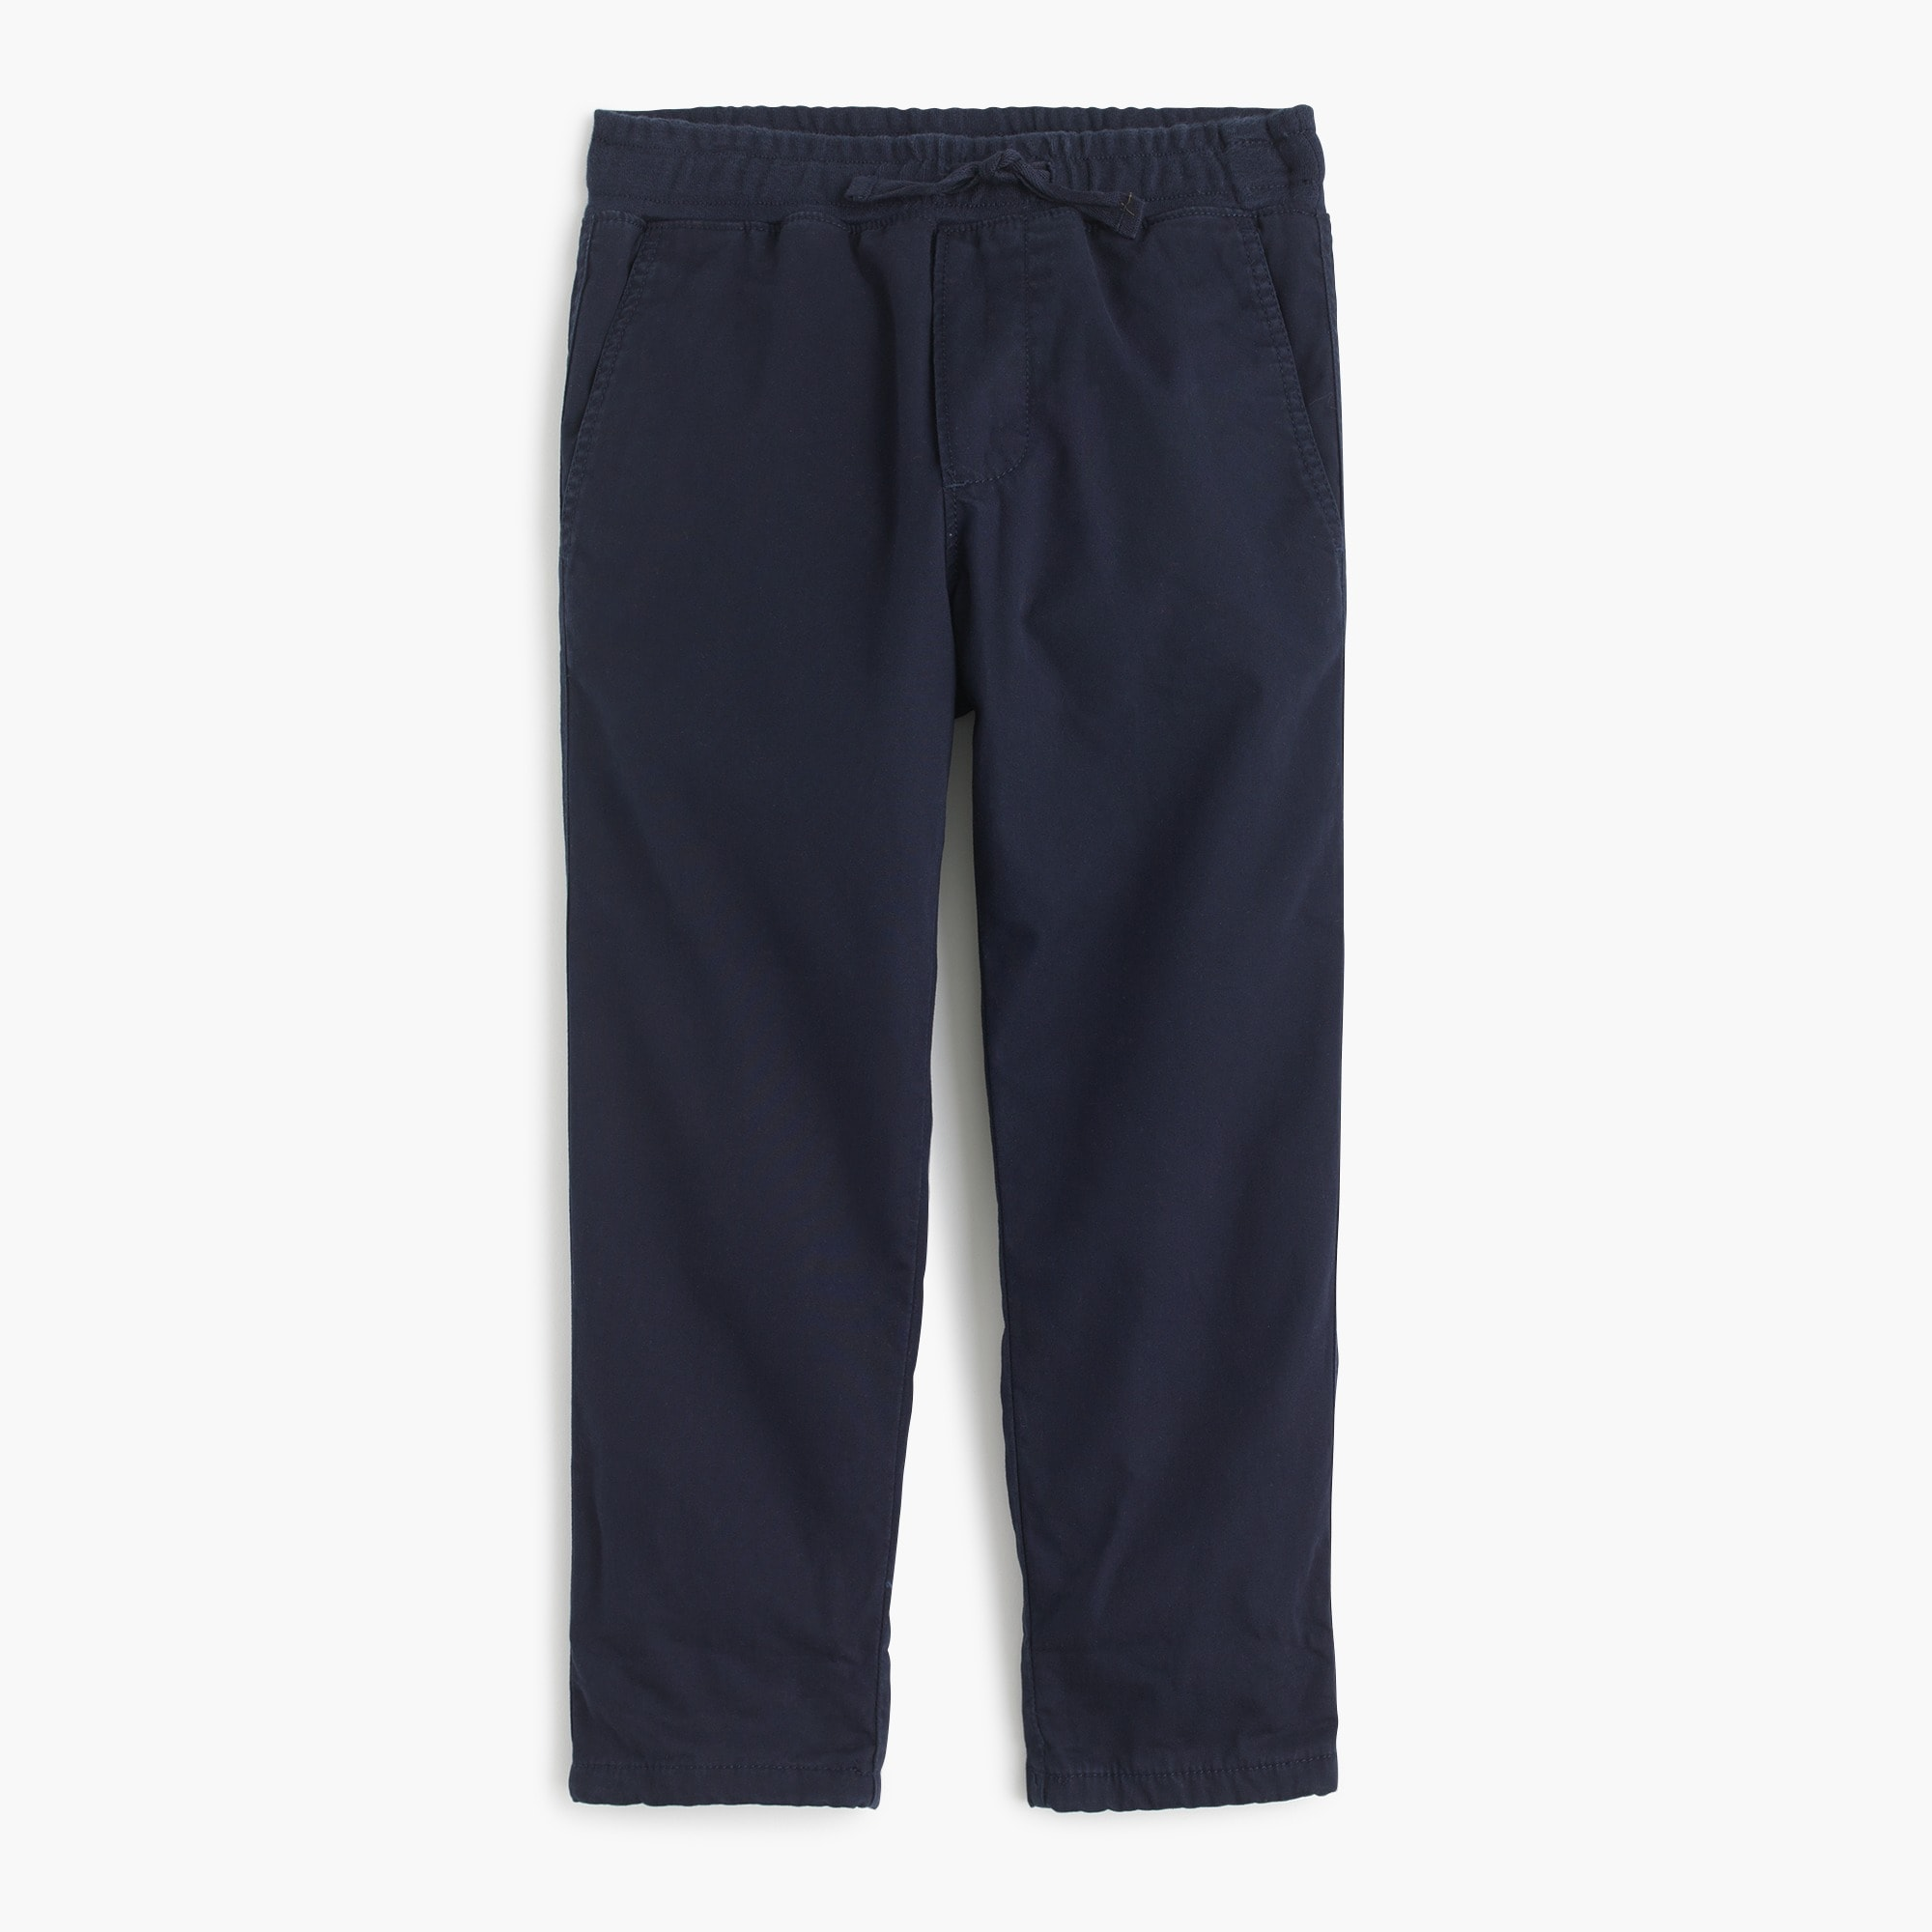 Boys' lined chino pull-on pant